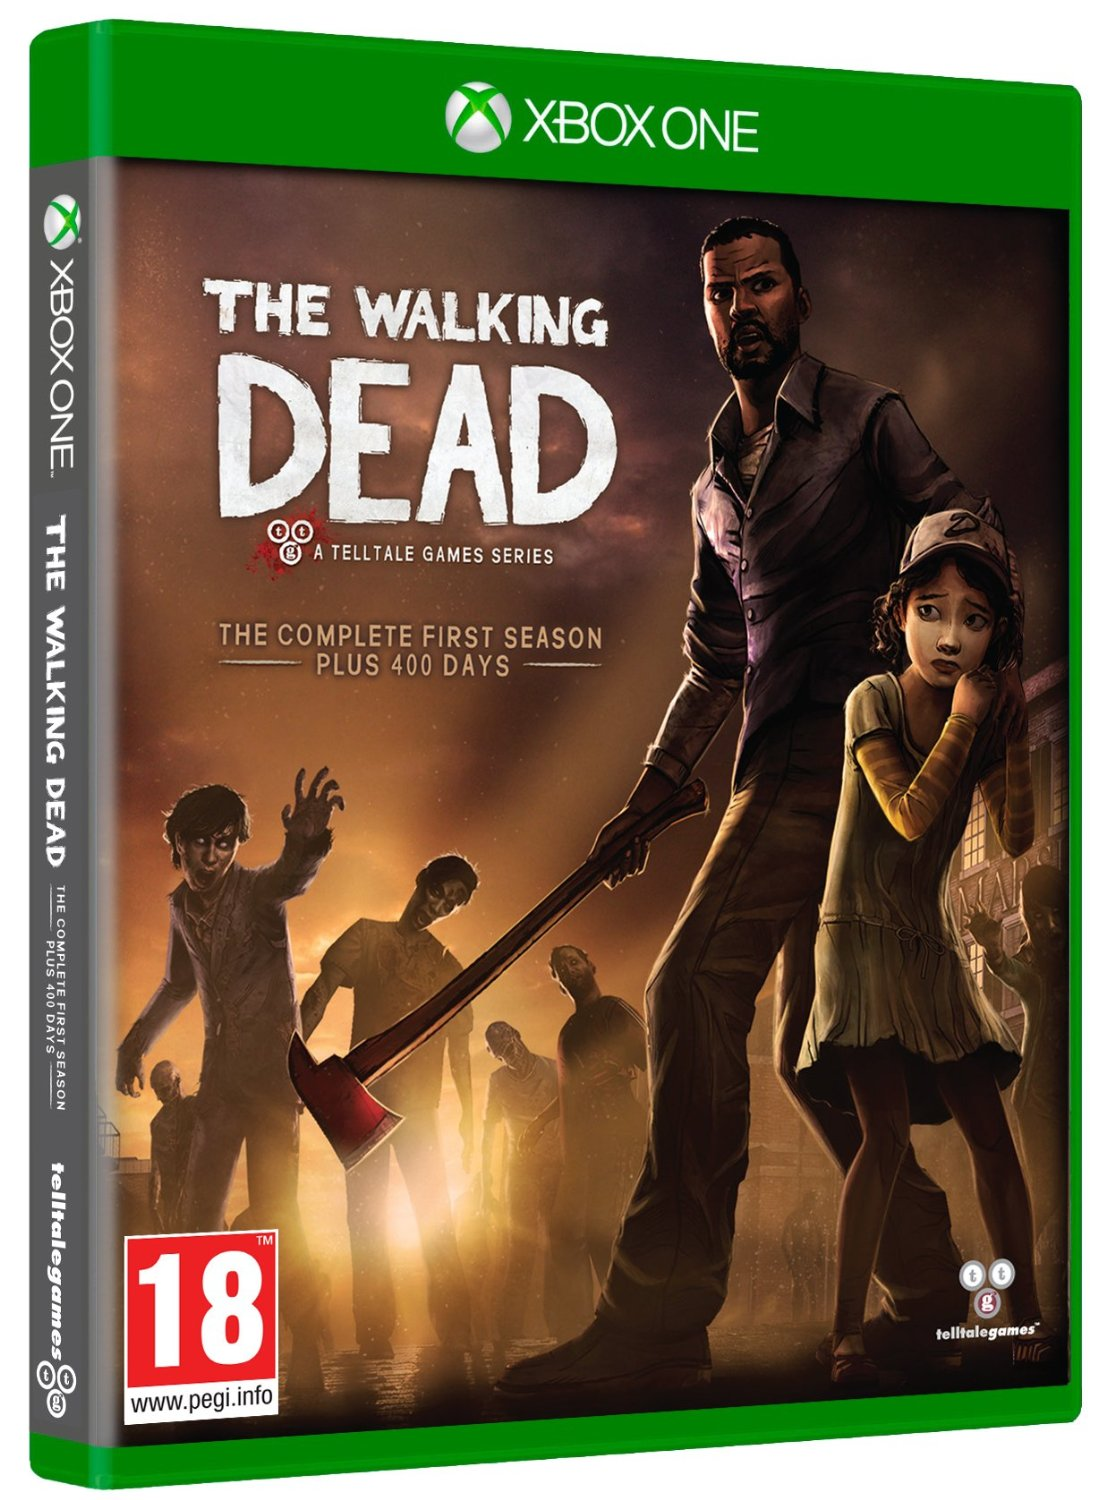 XBOX ONE: The Walking Dead GOTY Edition: The Complete First Season